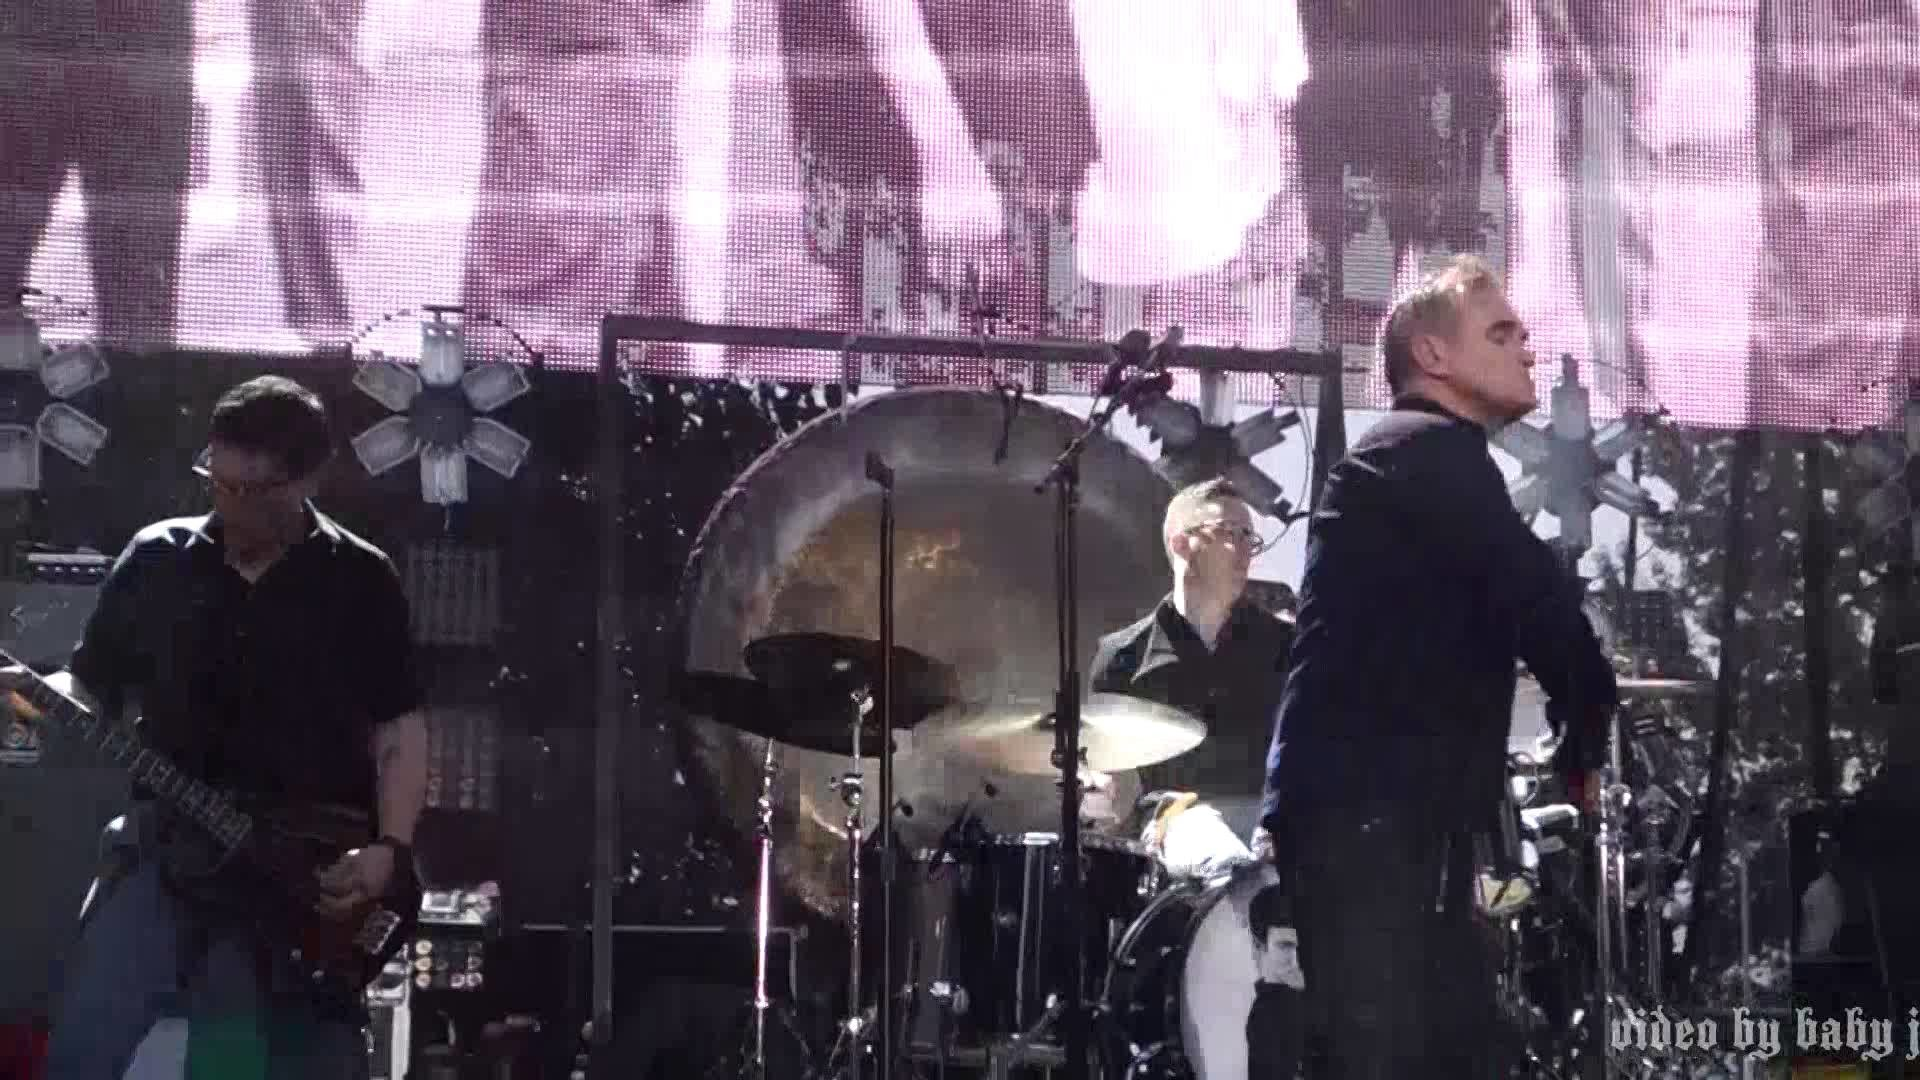 Morrissey-WHAT SHE SAID(The Smiths)-Live @ Edgefield, Troutdale, OR, July  23, 2015-MOZ